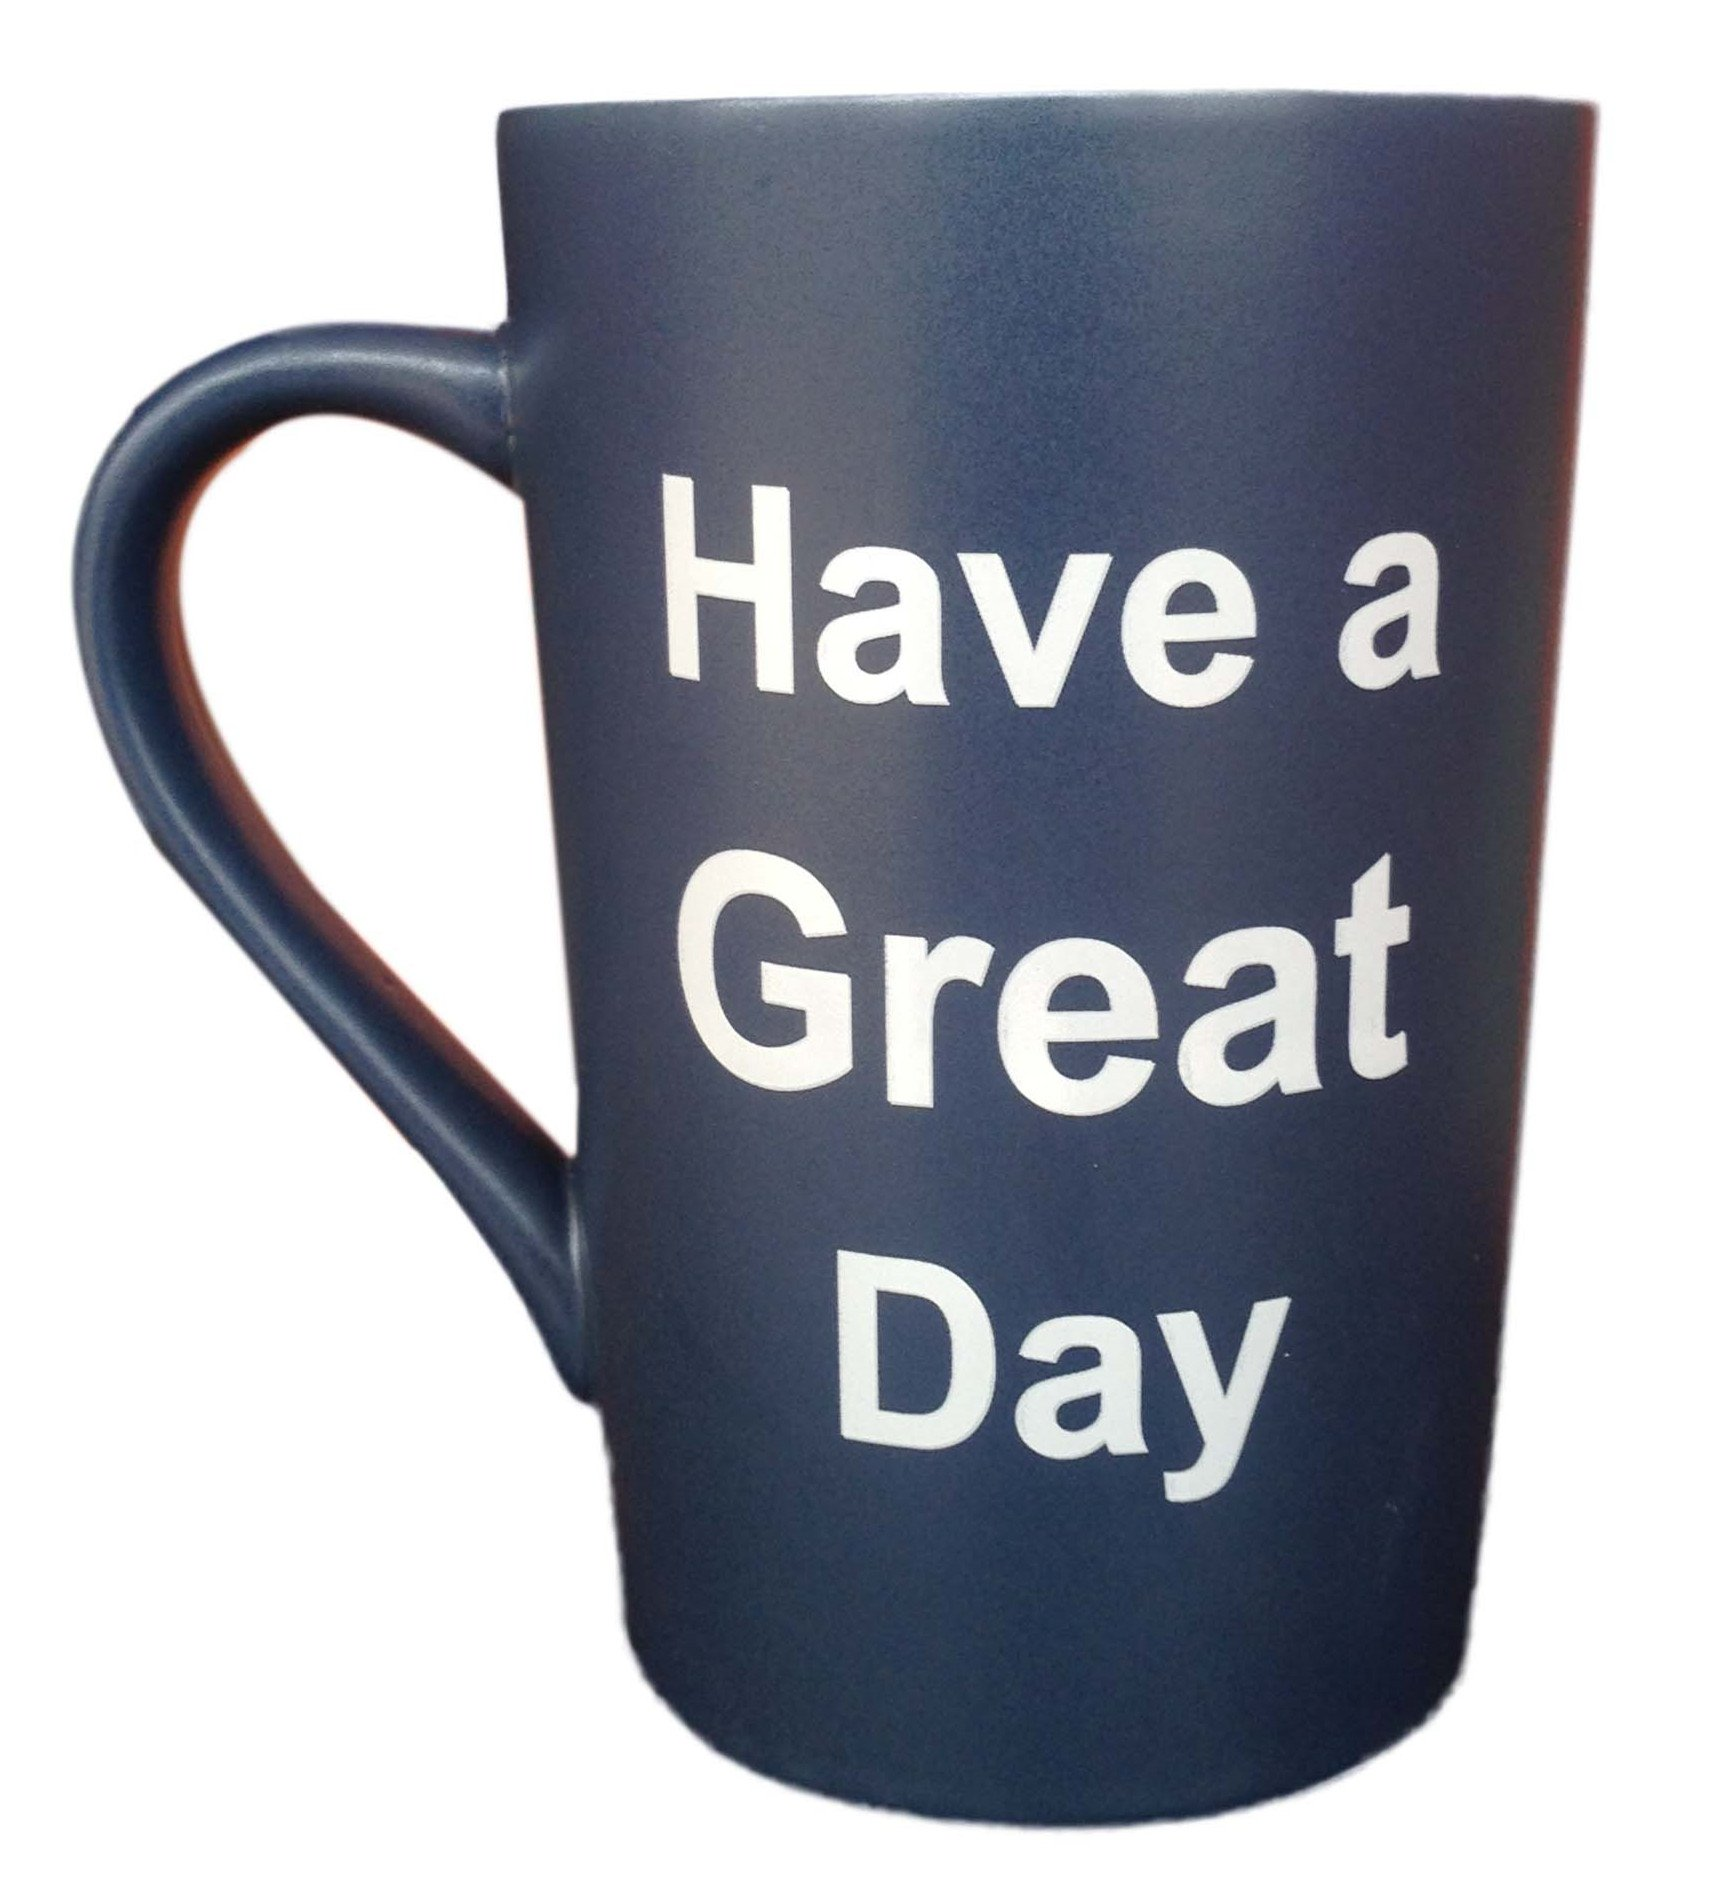 MAUAG Funny Christmas Gifts - Ceramic Coffee Mug Have a Great Day ...